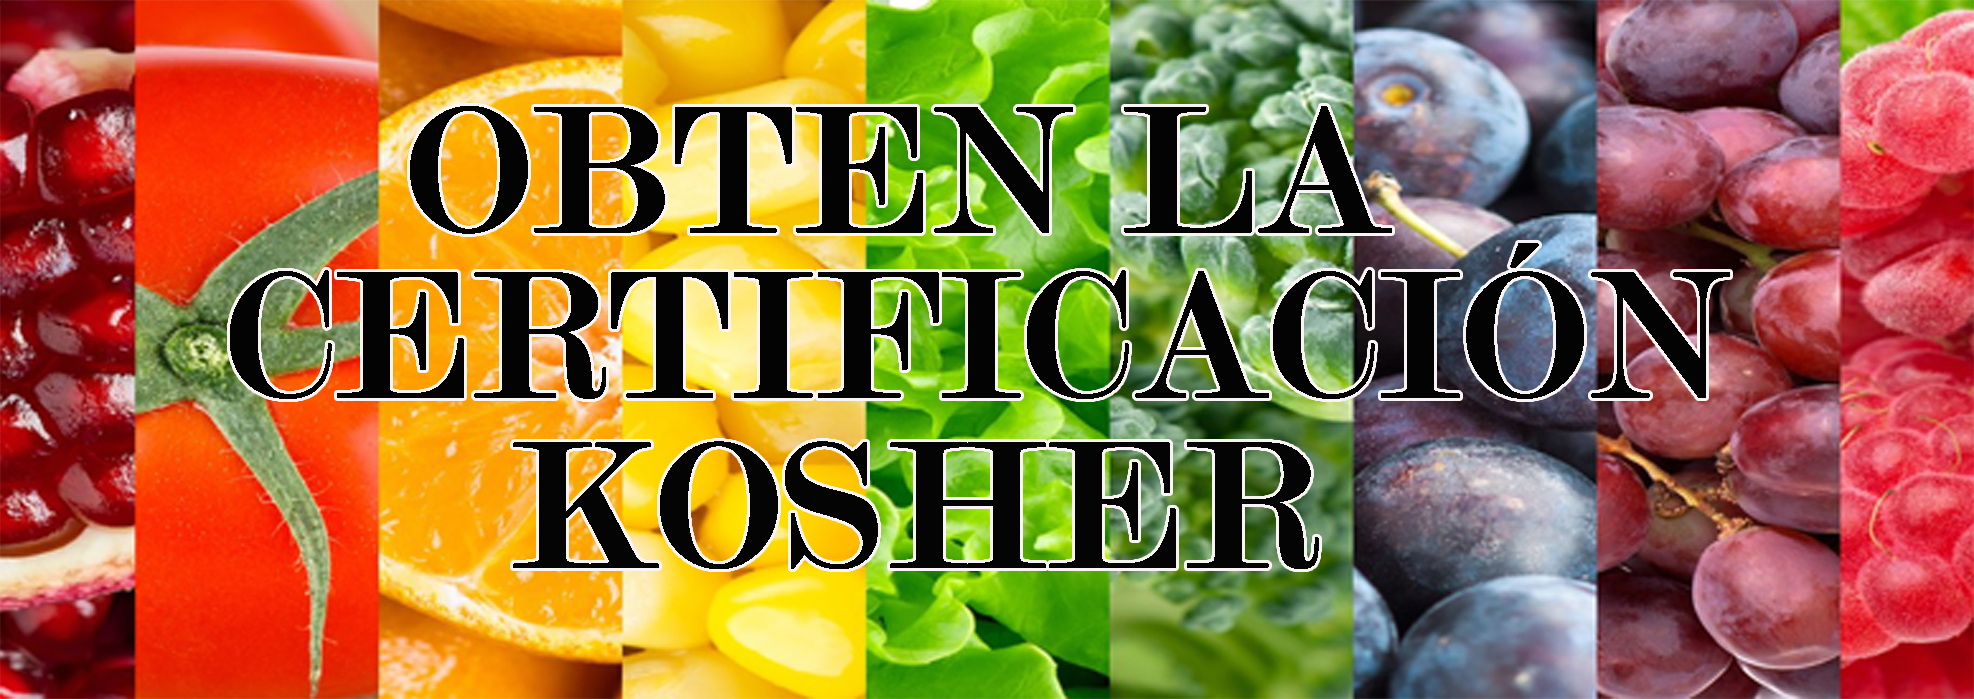 obten-la-ceretificacion-kosher-2-copy